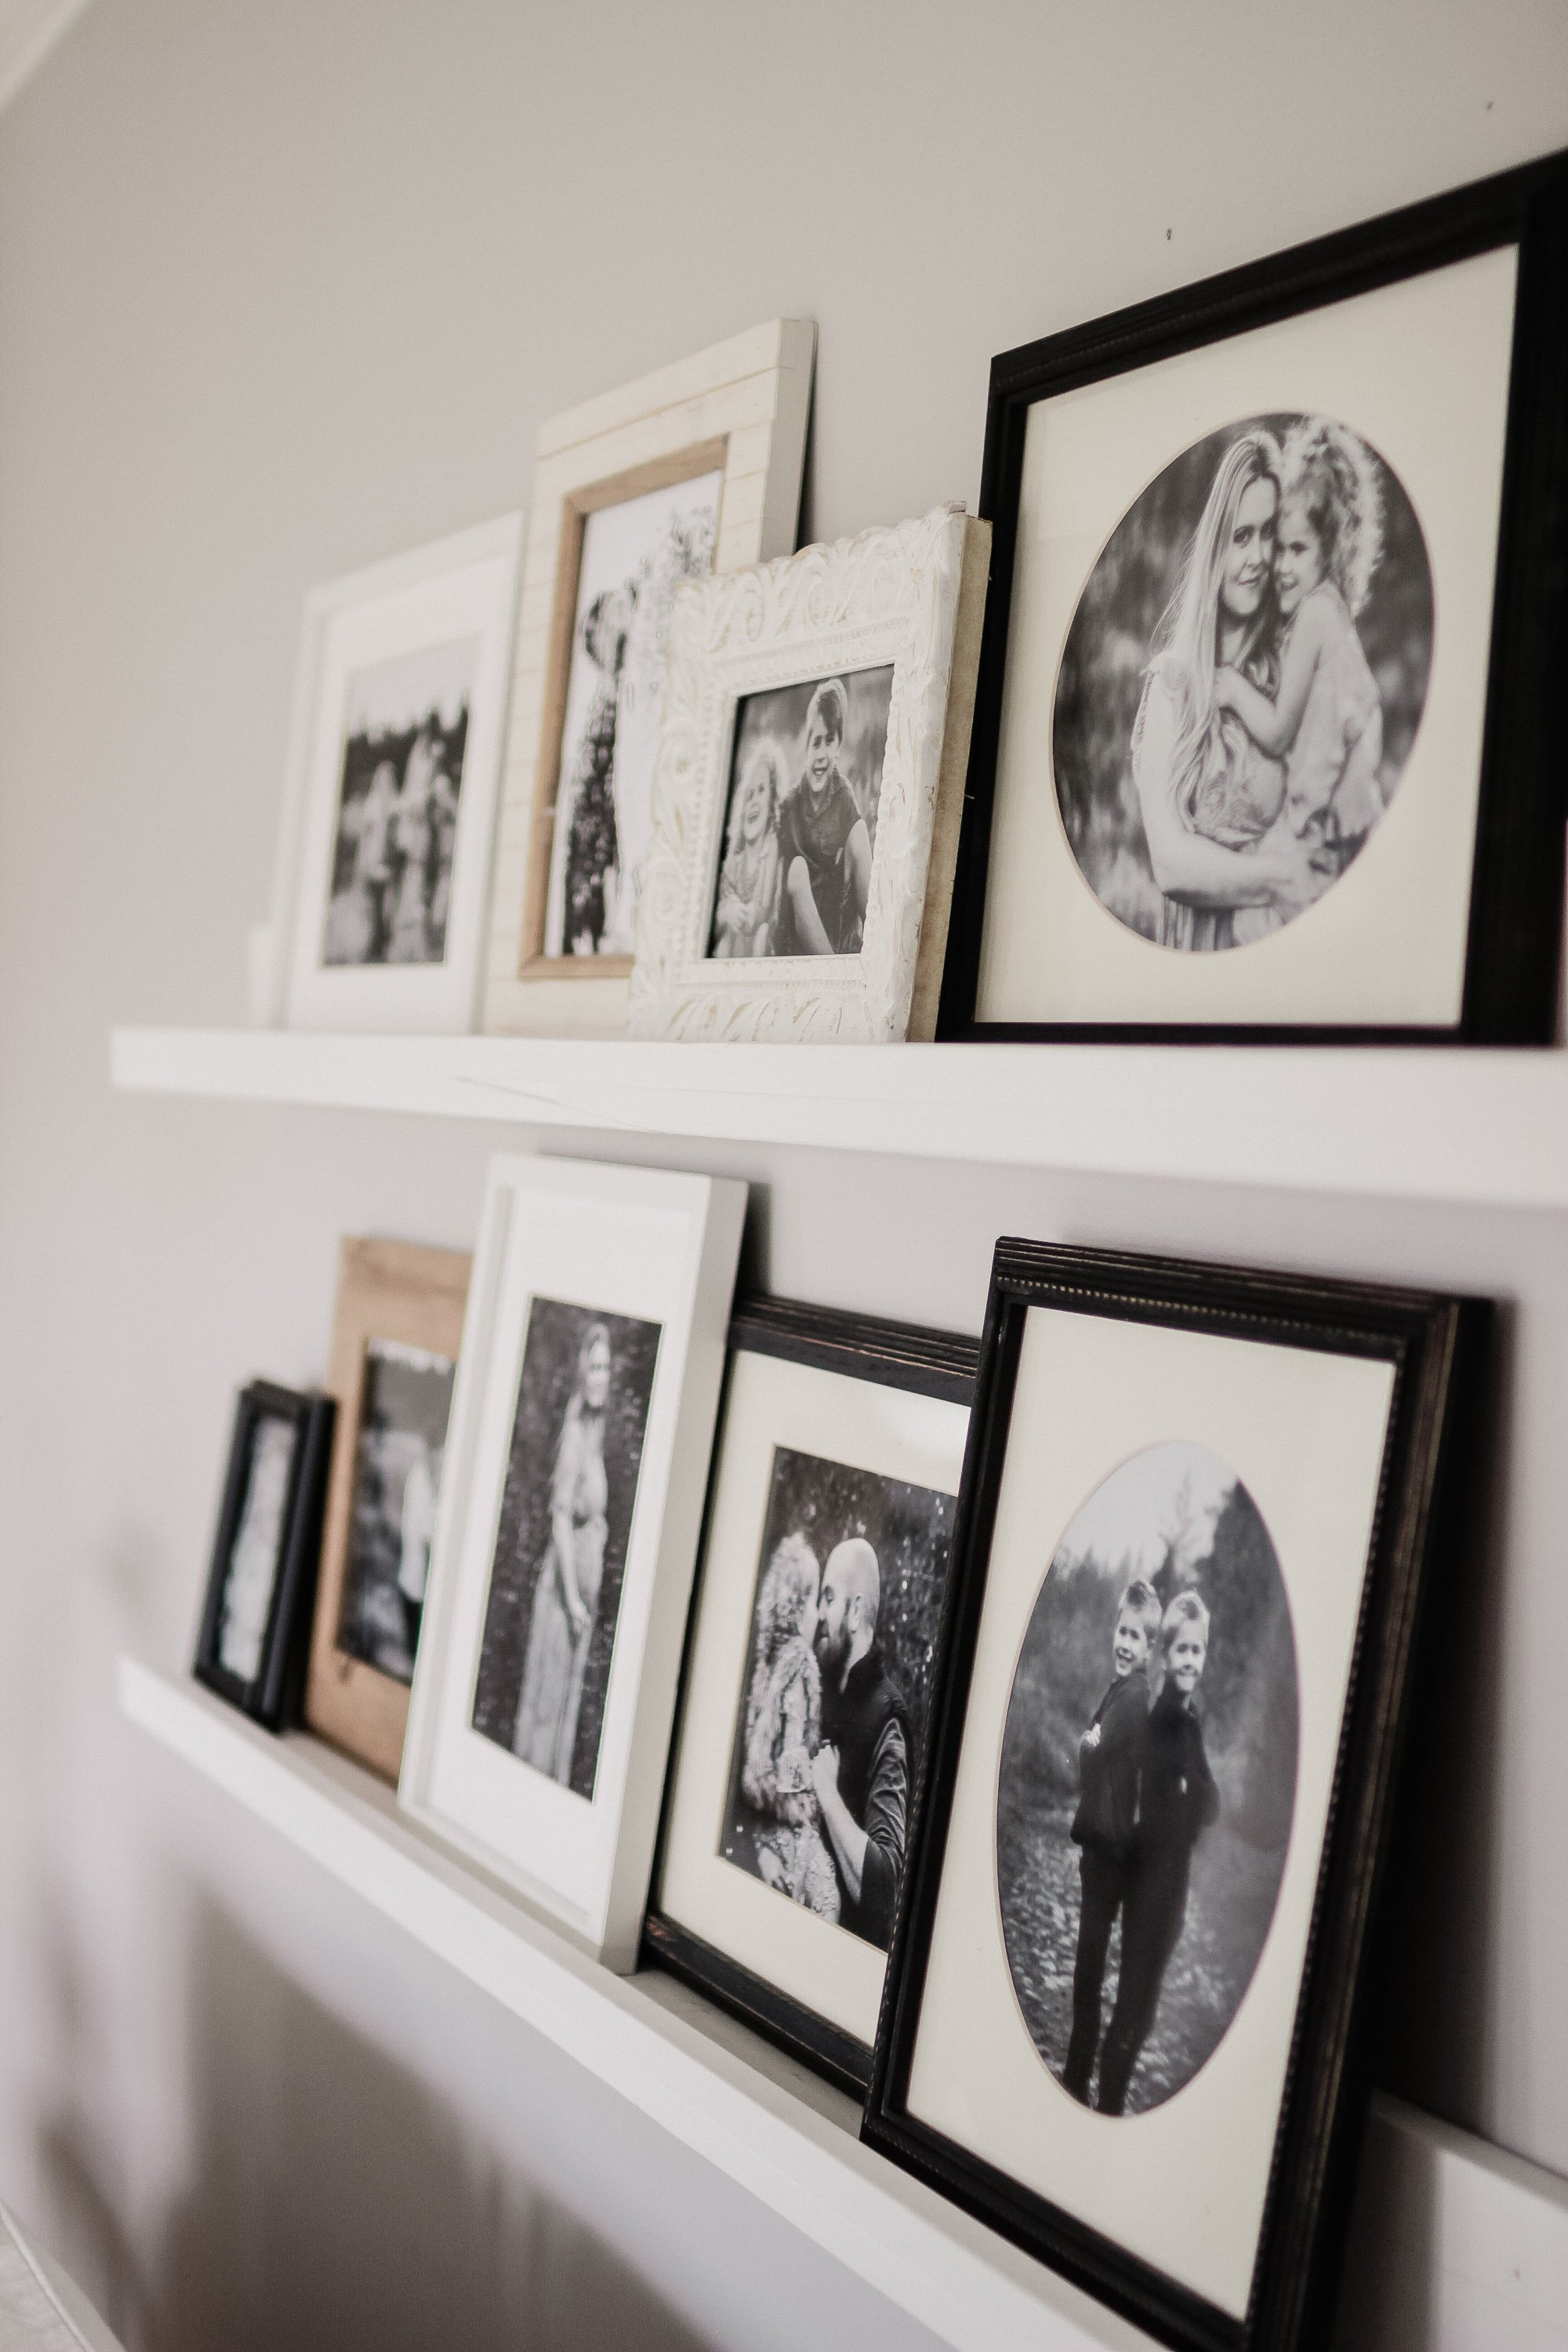 Super Easy DIY Picture Ledge. How To Make One In Under 10 Minutes and 10 Dollars, Way Cheaper Than Ikea and Way Better Quality. Simple Way To Hang Pictures On Your Wall For a Gallery Wall